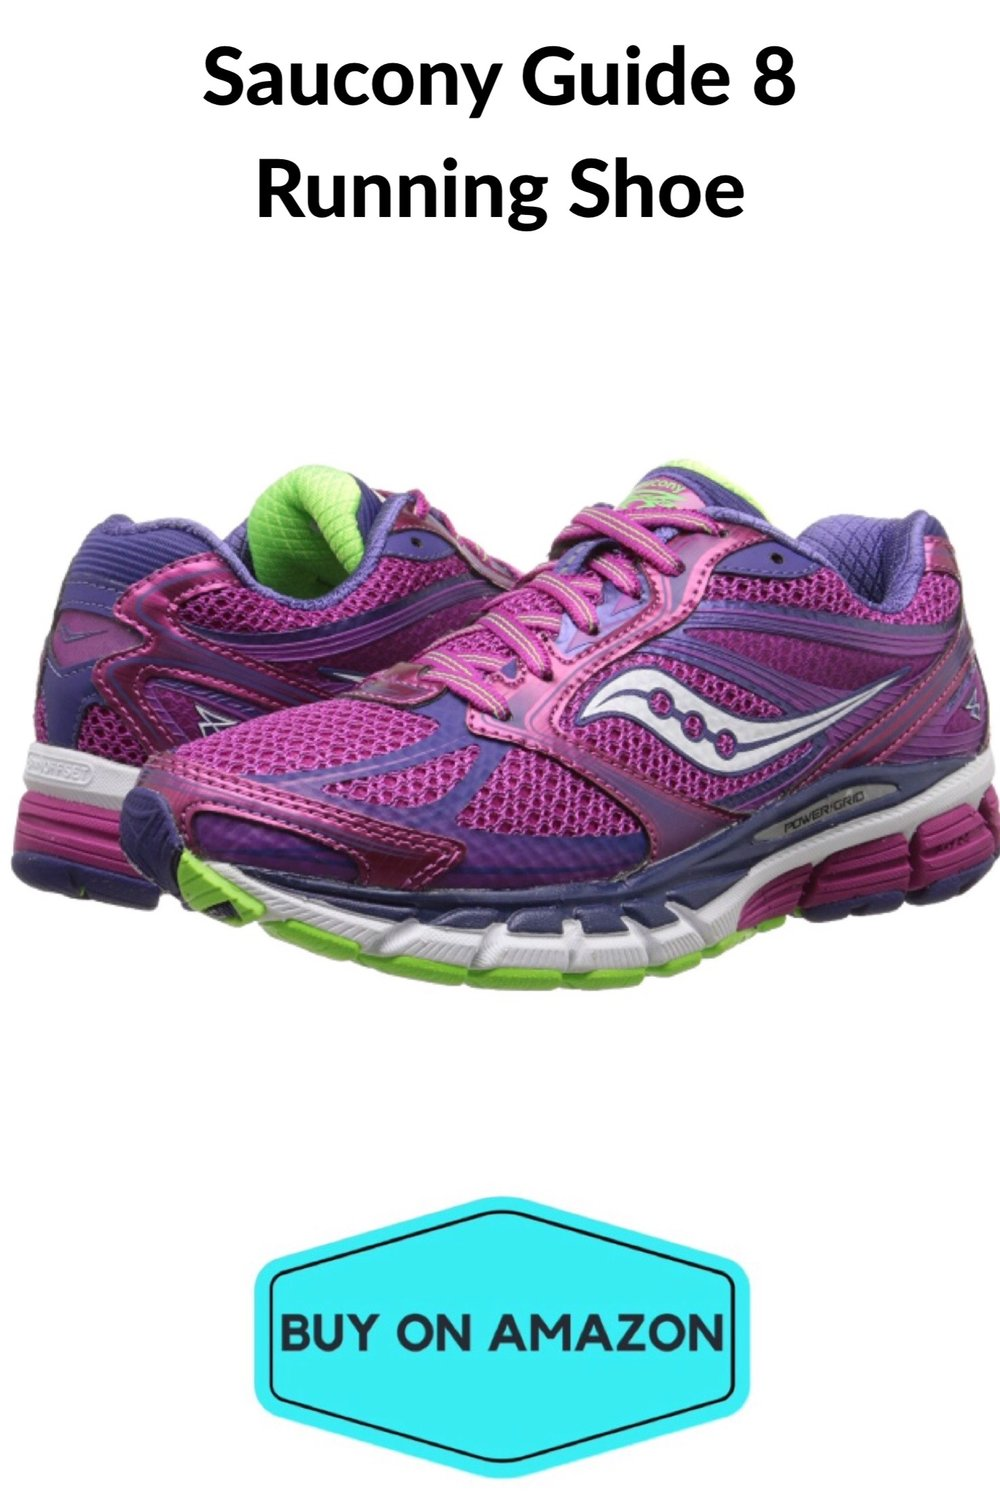 Saucony Guide 8 Women's Running Shoe